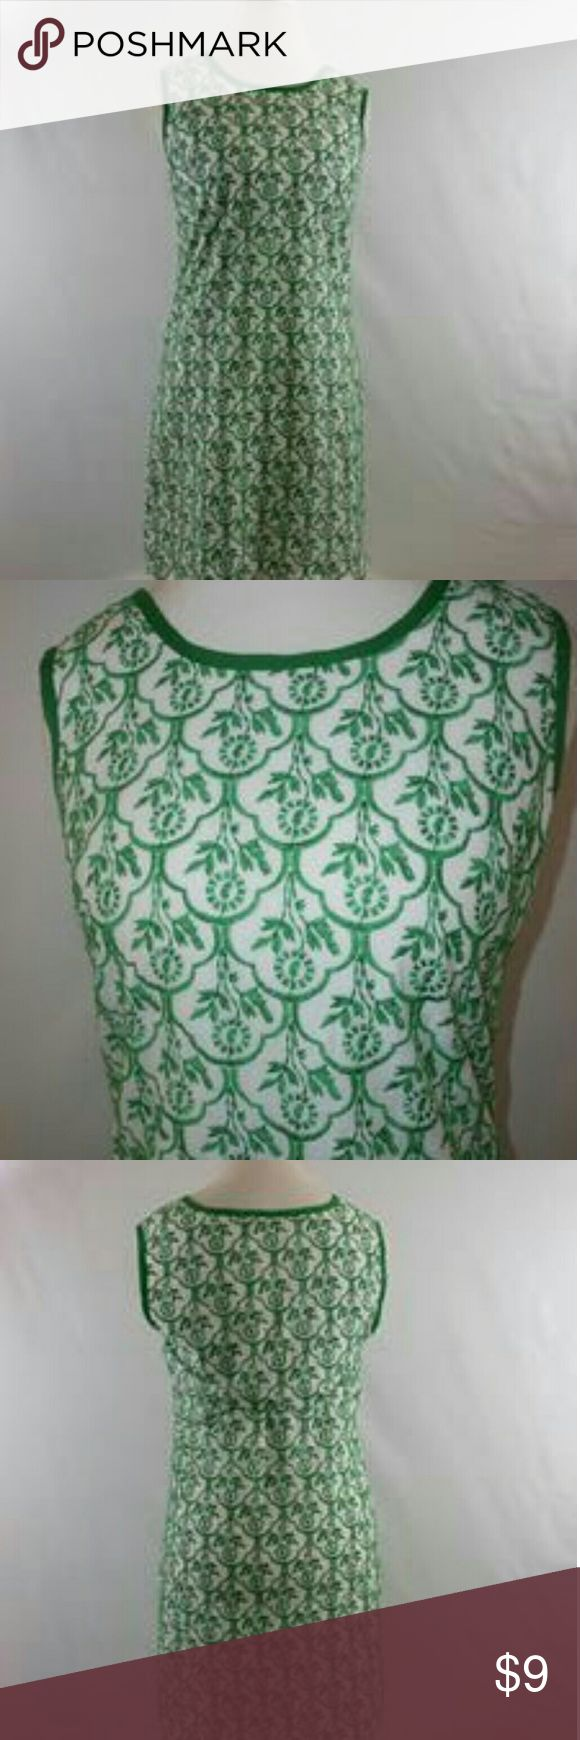 """Sophie Max Green Print Dress Sz Medium A green and white print dress by Sophie Max. It is a size medium. It is a pull over style. Made of 100 % cotton. Measurements shoulder to shoulder 15 """" pit to pit 18"""" waist 18"""" length 35""""  A40 Sophie Max Dresses Mini"""